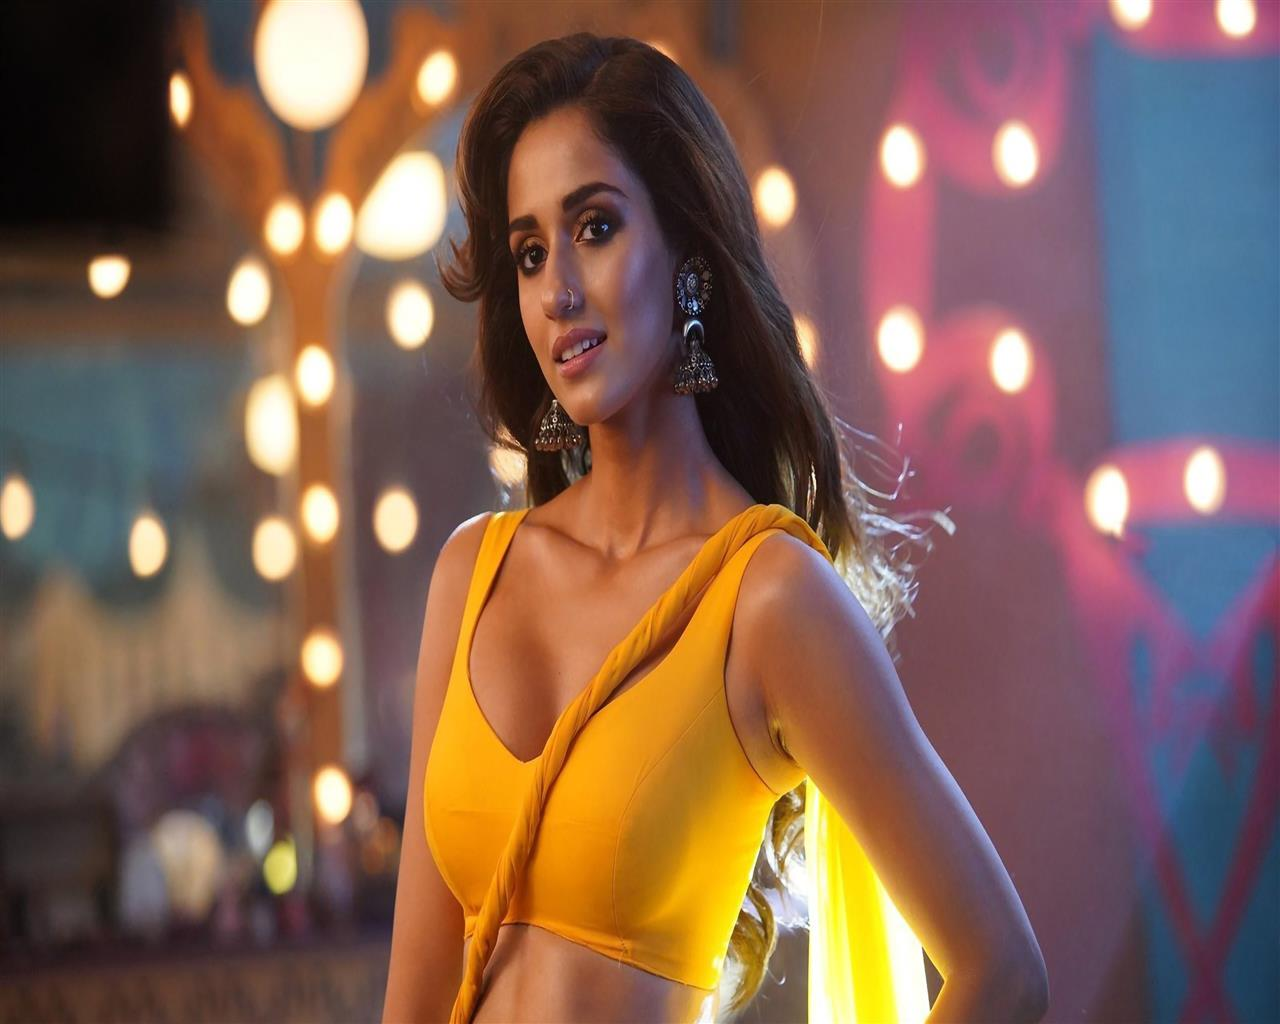 1280x1024 Actress Disha Patani in Yellow 4K Wallpaper